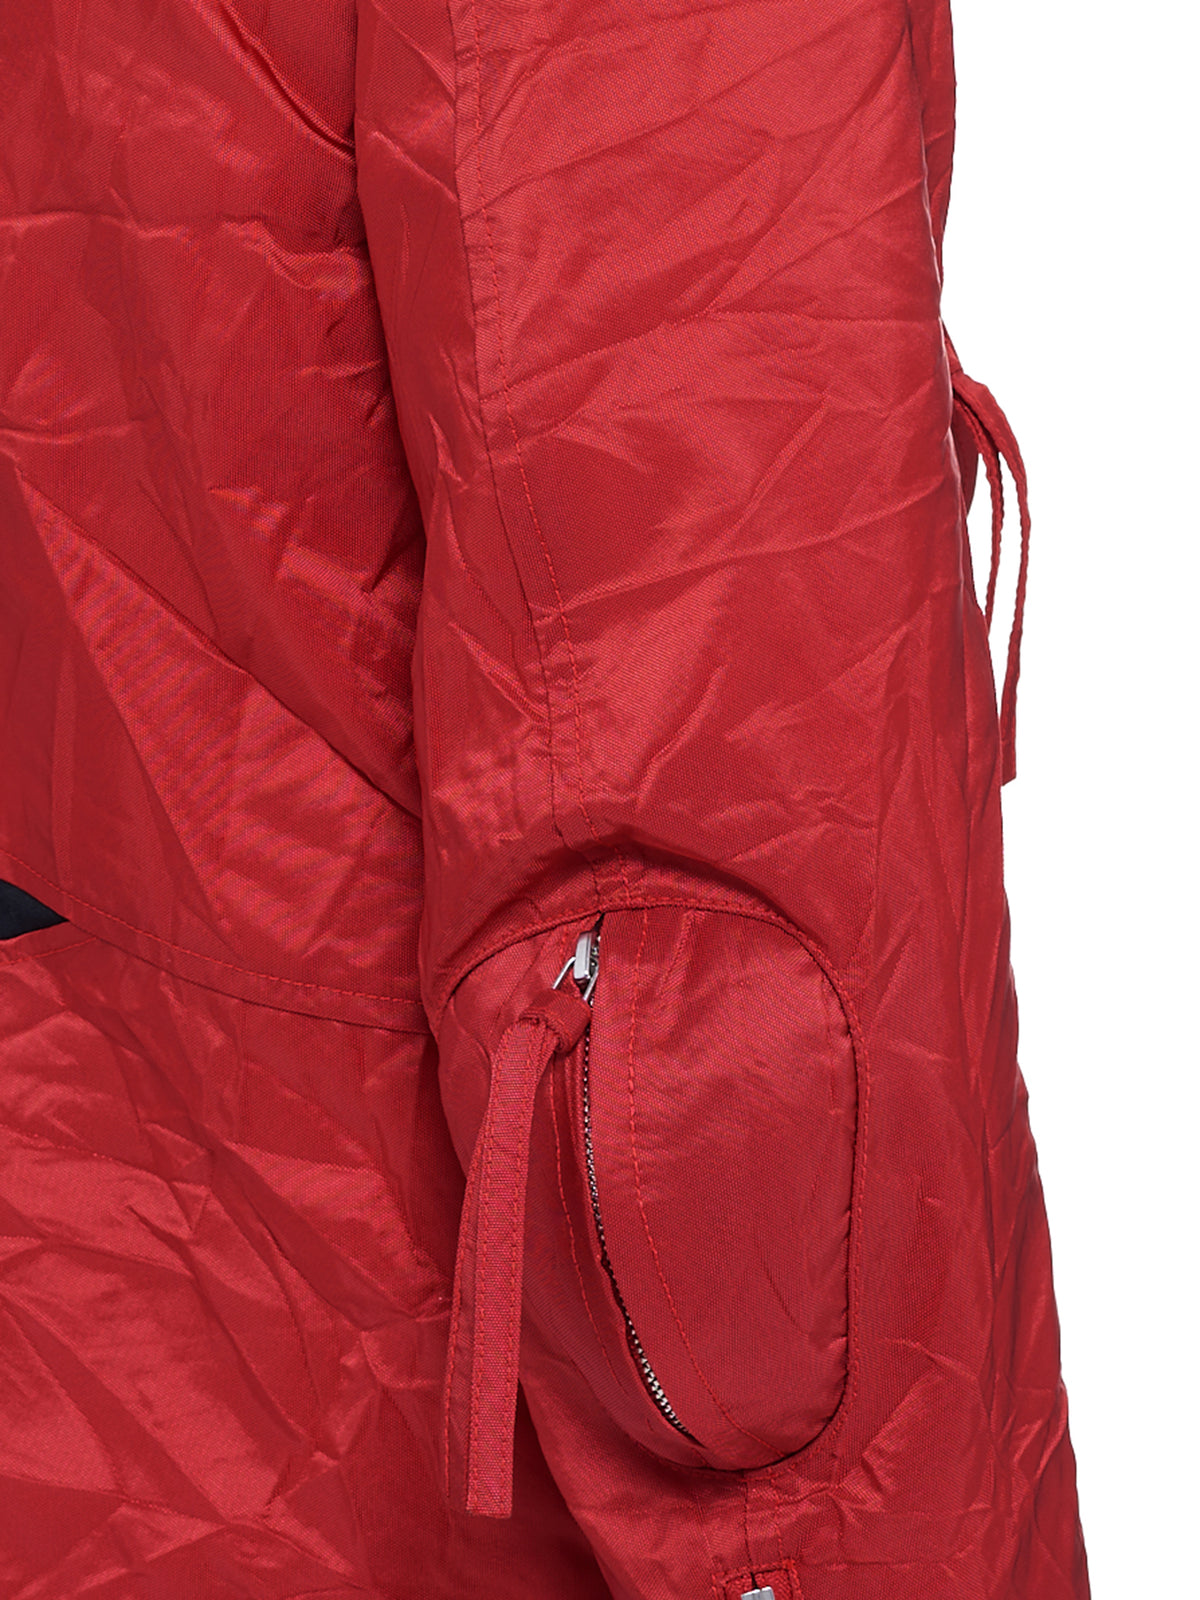 Airbag Shoulder-Guarded Two-Pocket Jacket (RMA21SSJK05-RED)